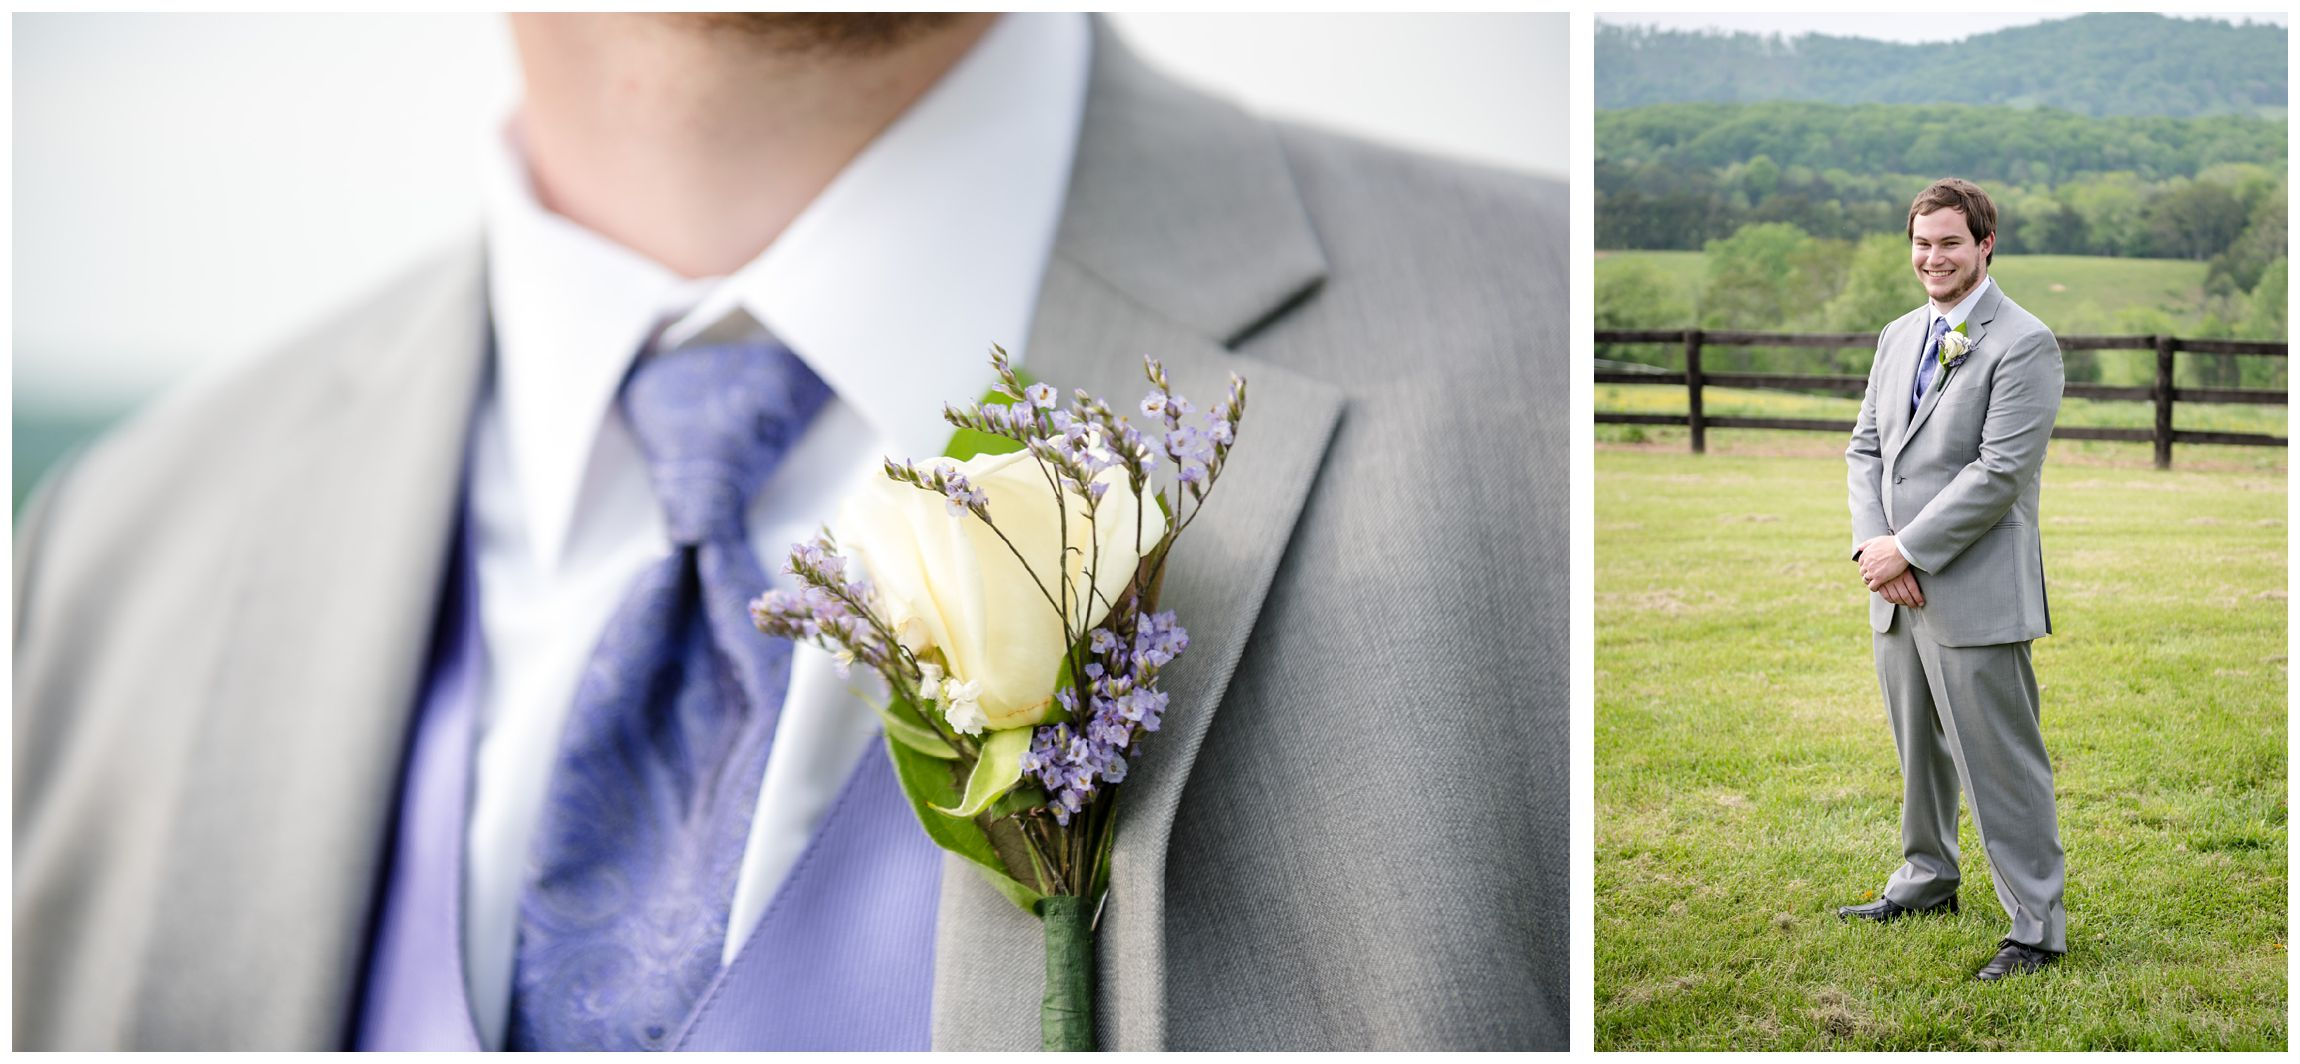 groom with purple tie and boutonniere